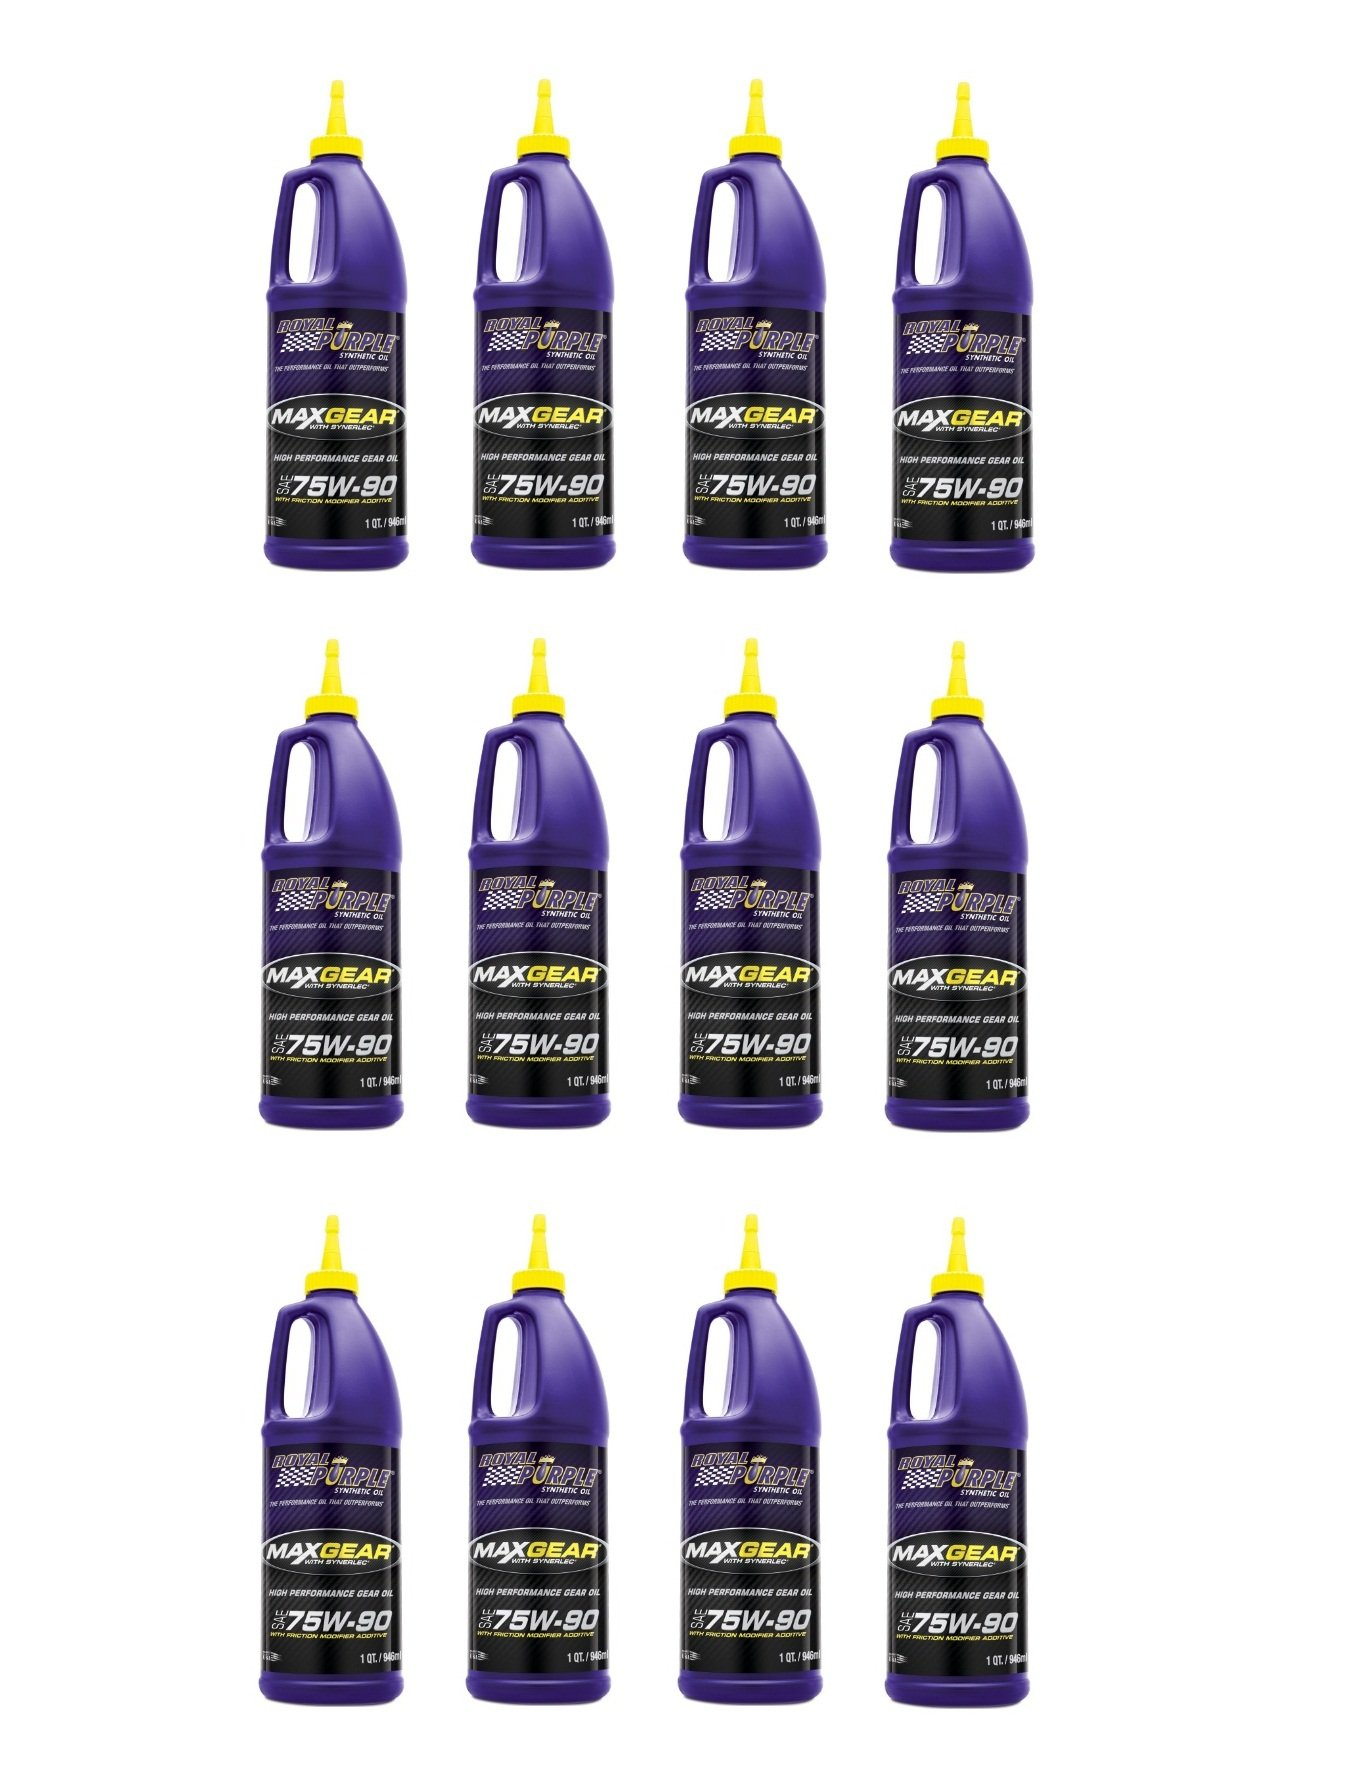 Royal Purple 12300 Max Gear 75W-90 High Performance Synthetic Automotive Gear Oil - 1 qt. (Case of 12) by Royal Purple